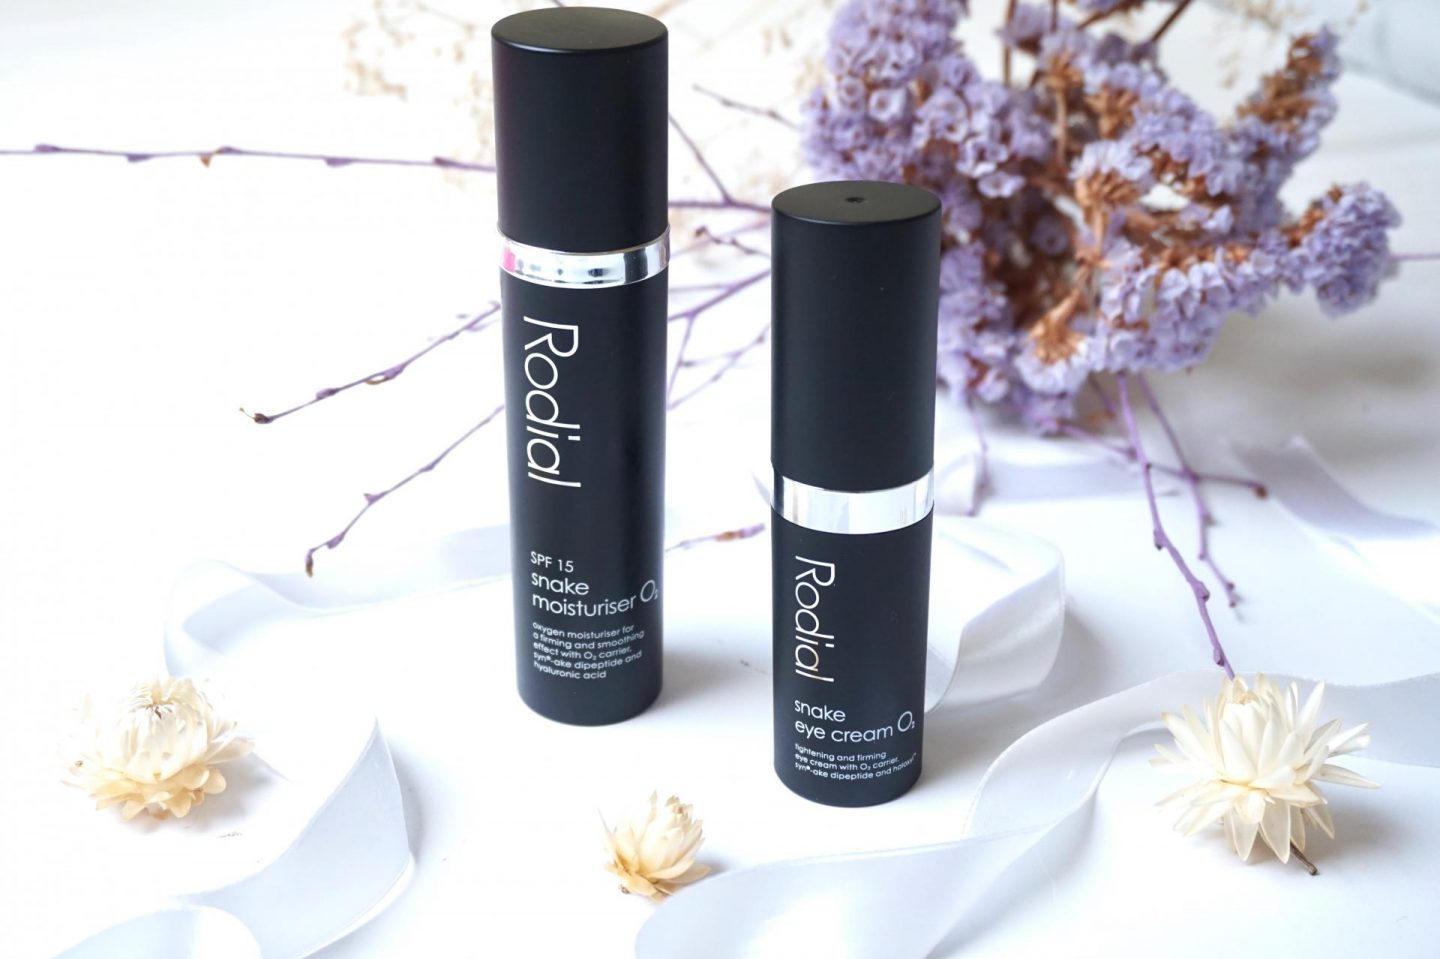 Rodial: Snake Eye Cream O2 and Moisturiser O2 SPF15